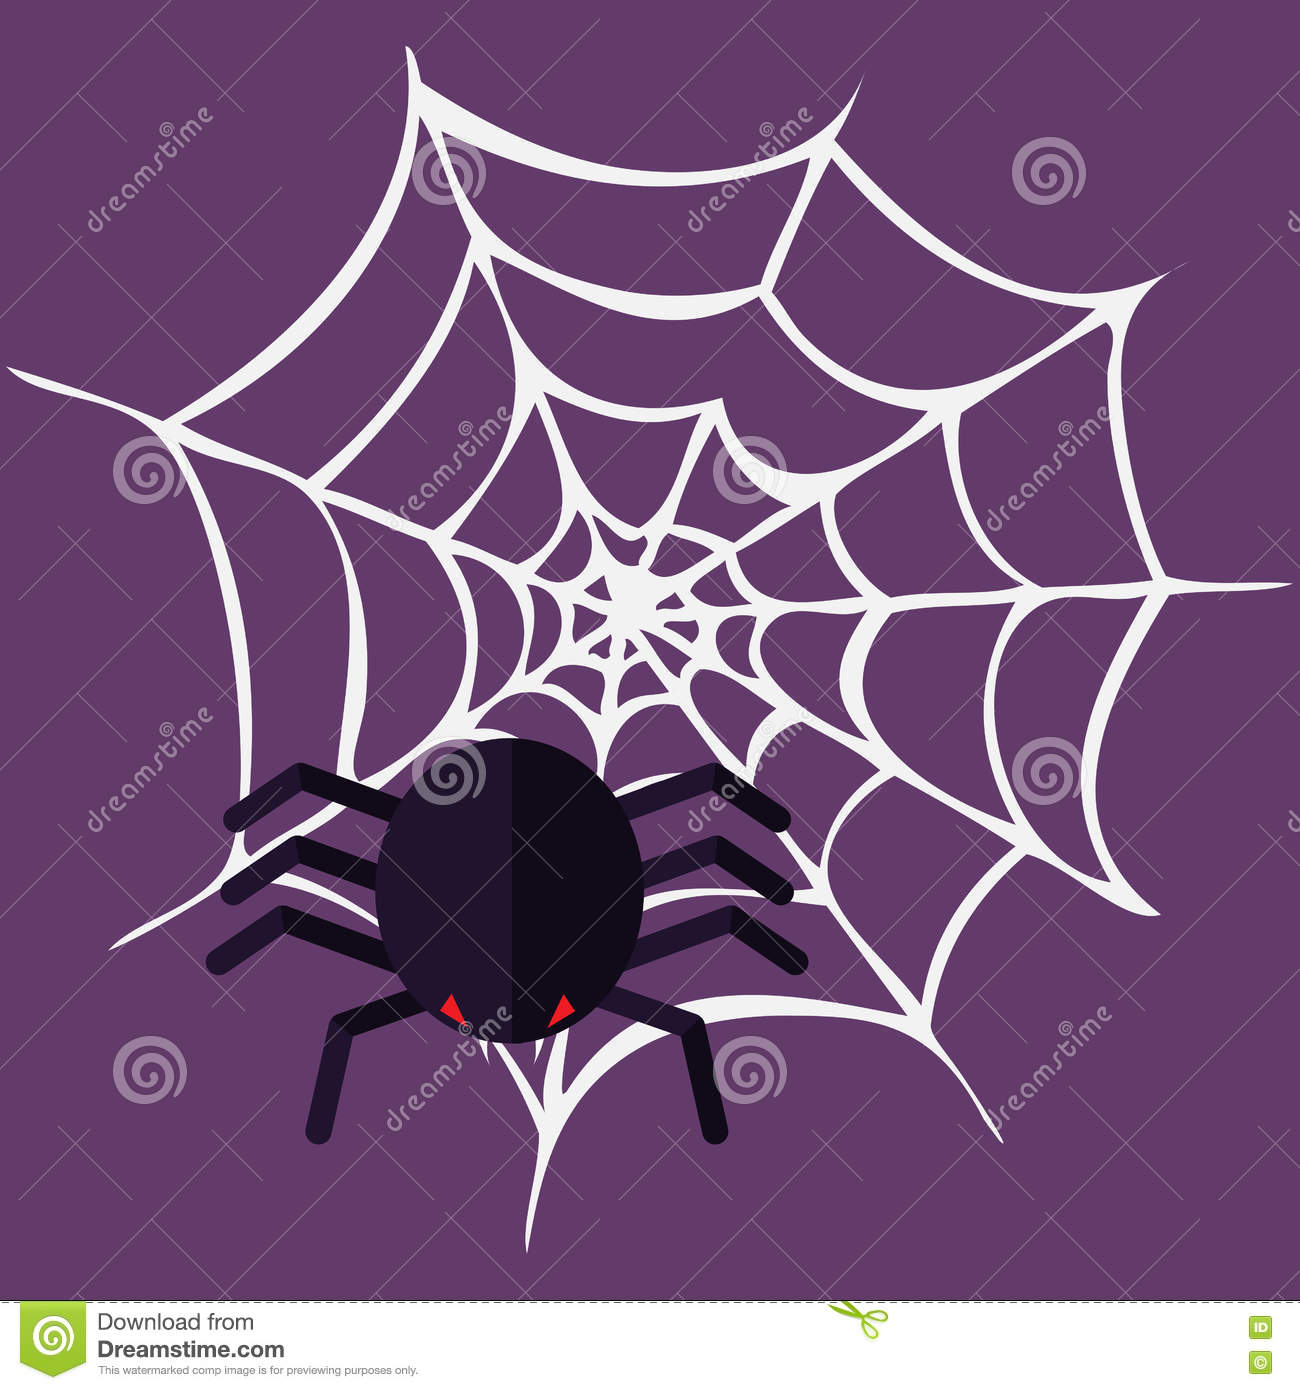 Top Wallpaper Halloween Spider - bloody-halloween-parts-spider-web-creepy-scary-can-be-used-wallpaper-page-background-surface-textures-79475967  Perfect Image Reference_326856.jpg